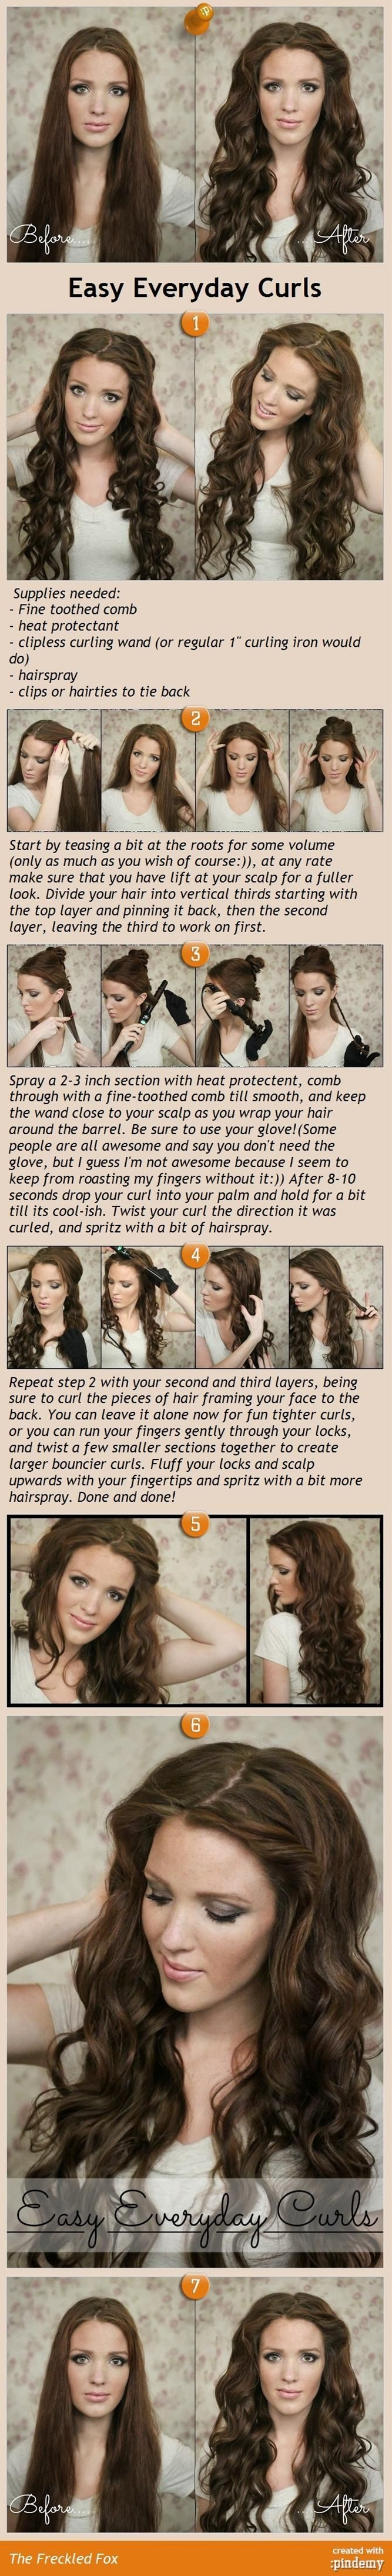 Superb tutorial for DIY curls that anyone can follow.